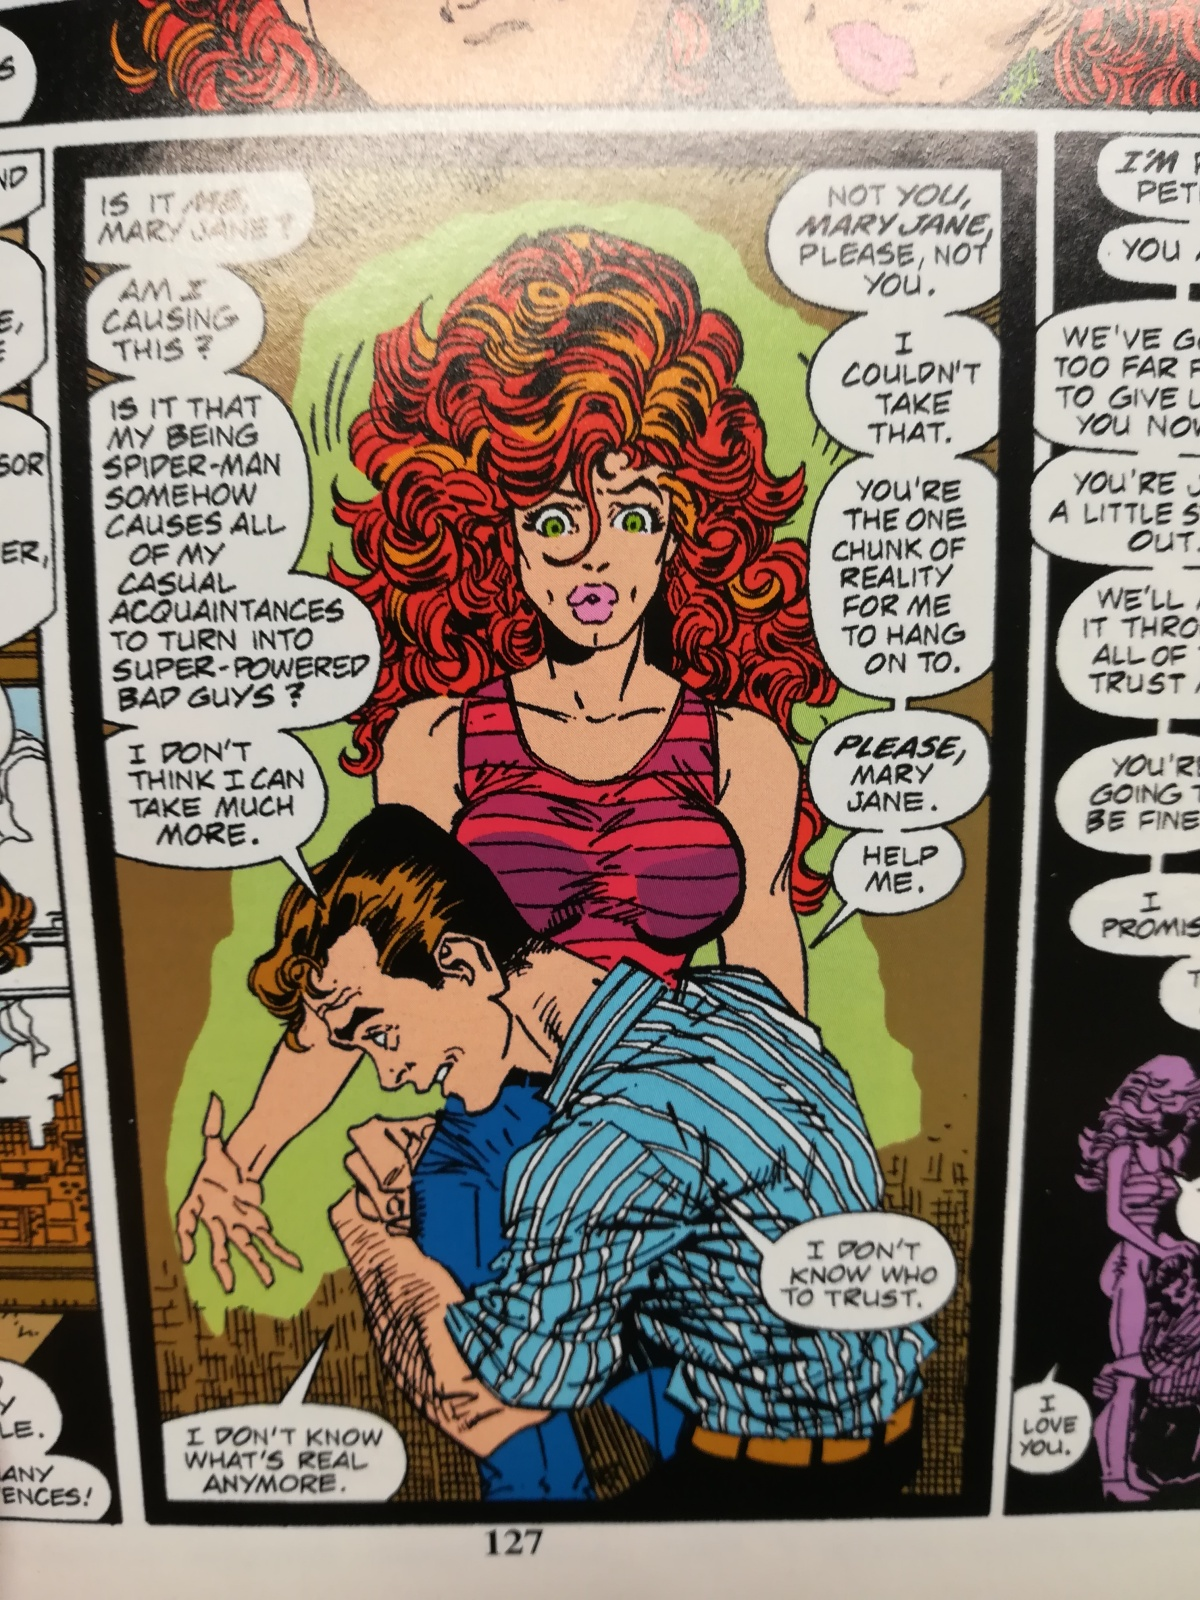 On the Hypersexualization of Female Characters in SuperheroComics